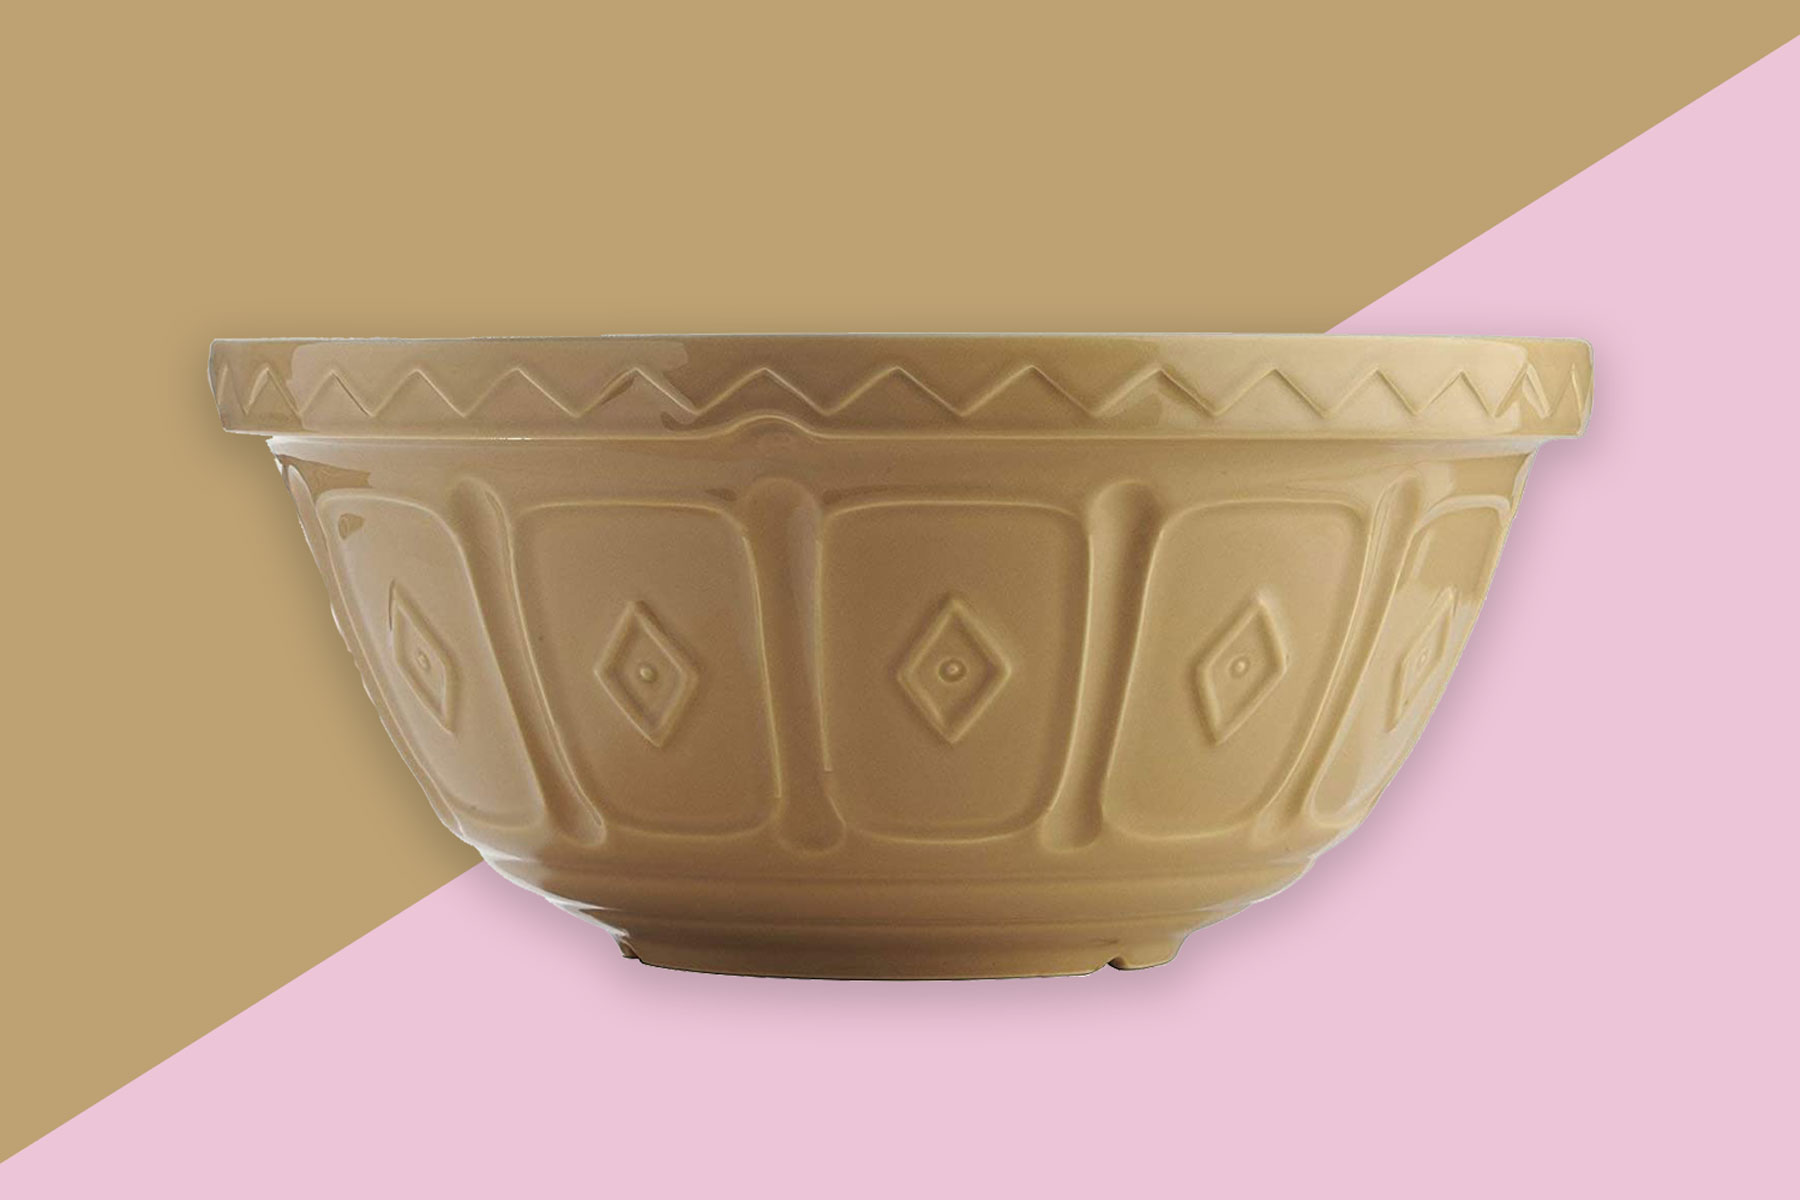 Tan ceramic mixing bowl